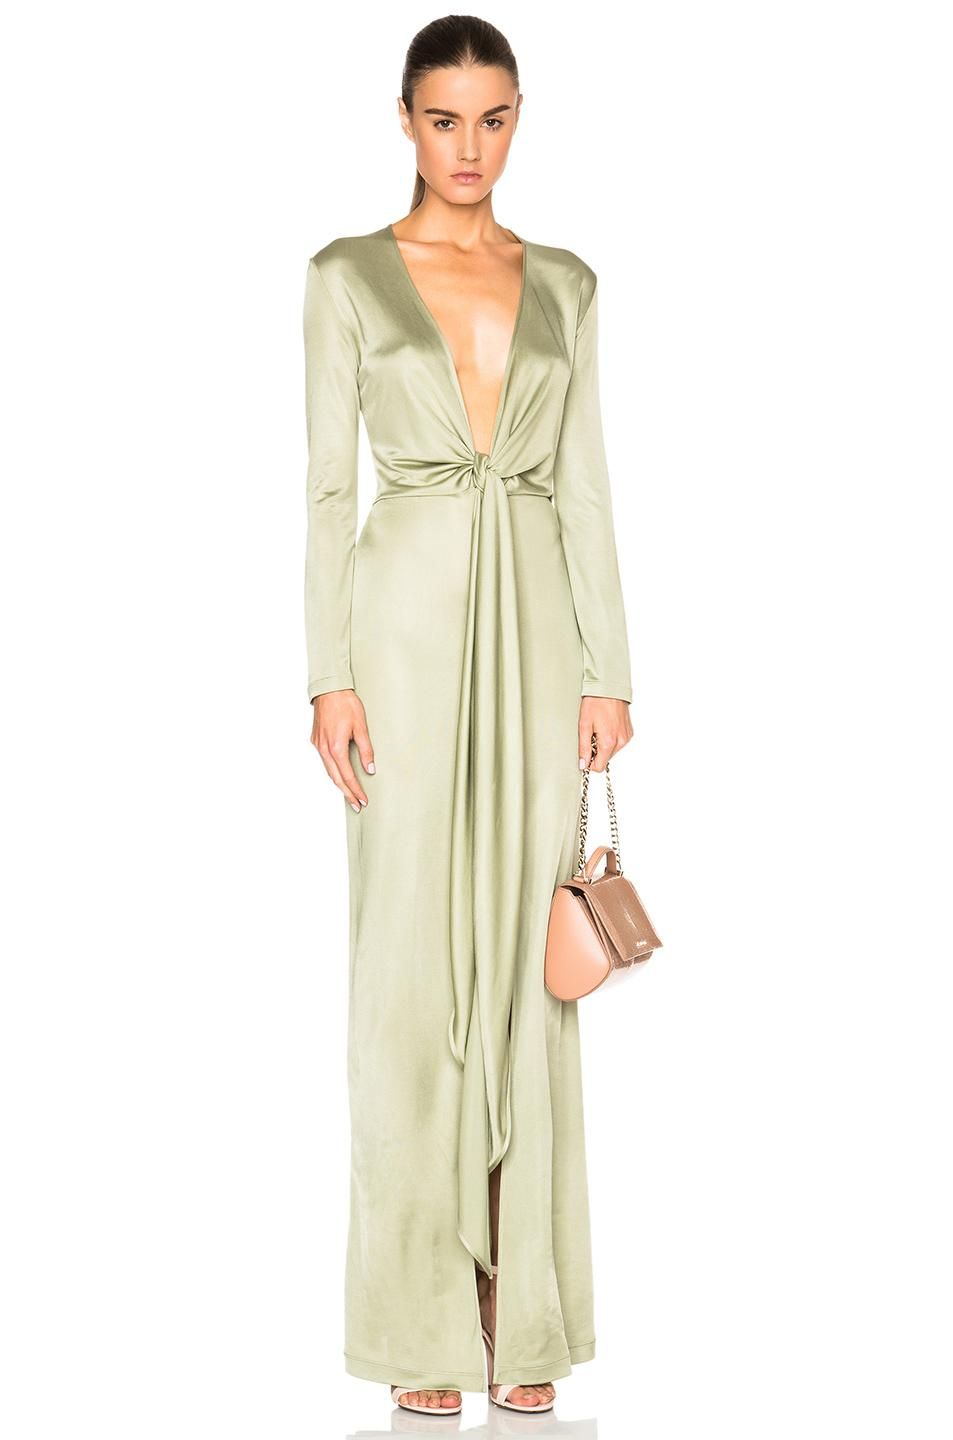 Lyst - Givenchy Jersey Gown in Green